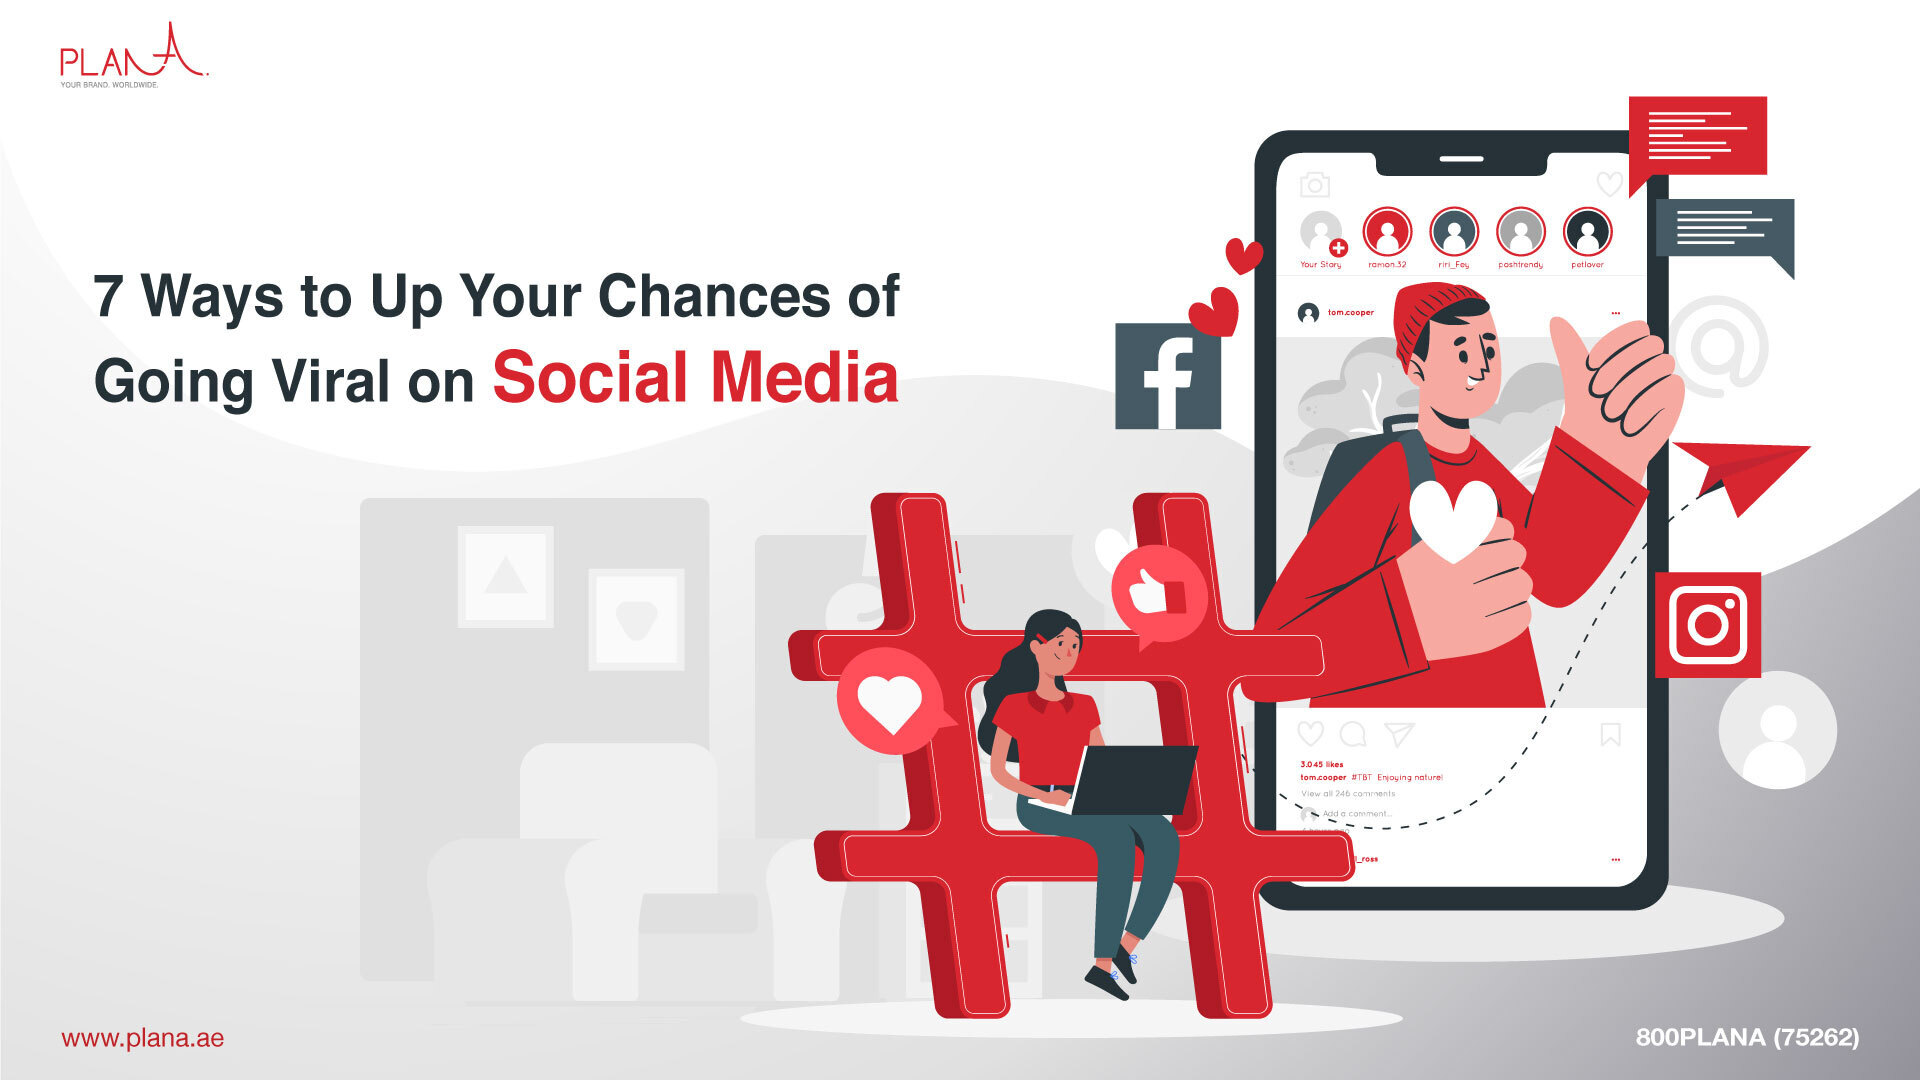 7 Ways to Up Your Chances of Going Viral on Social Media